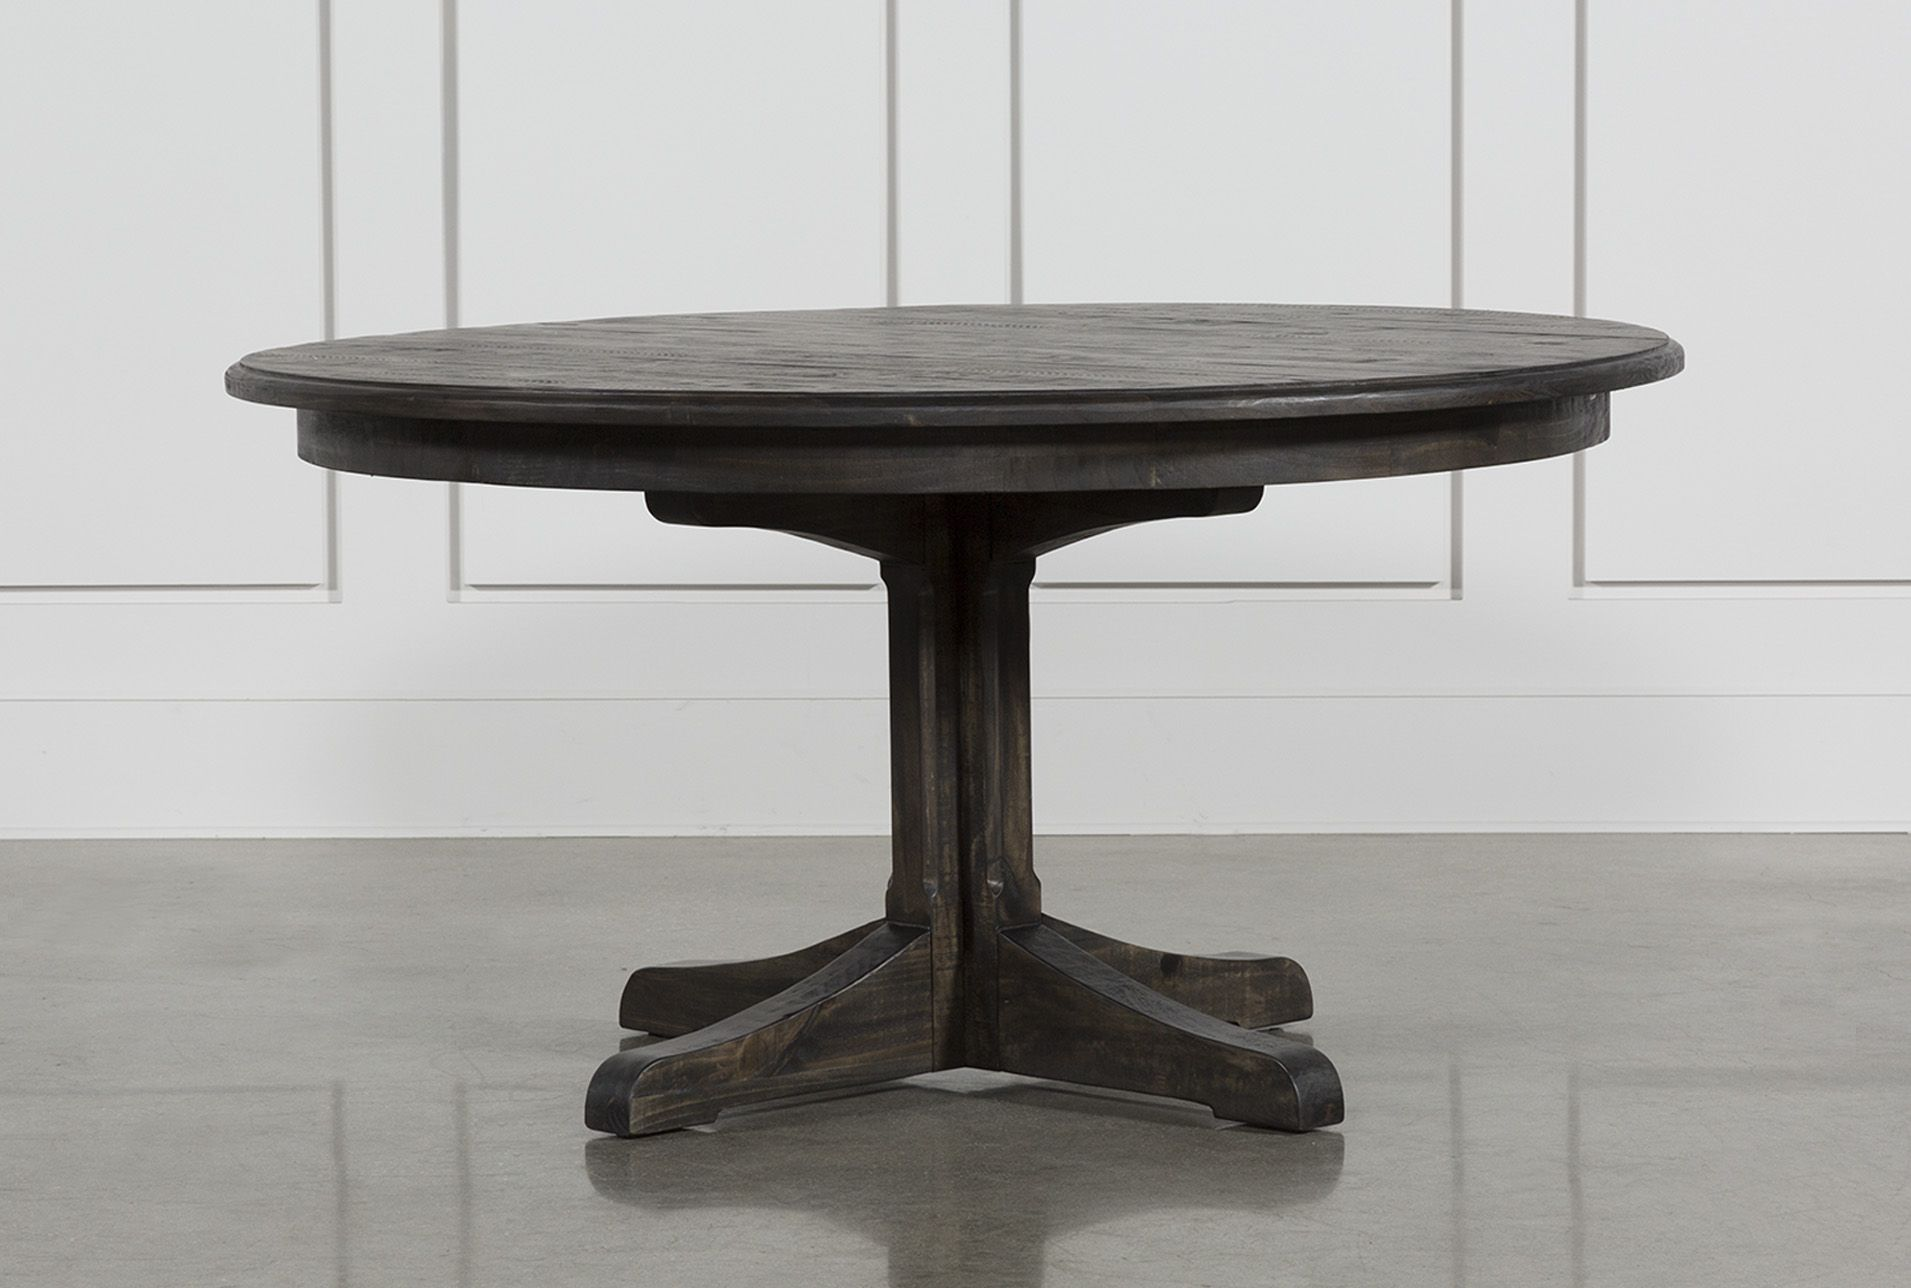 Valencia 60 Inch Round Dining Table | Round dining table ...